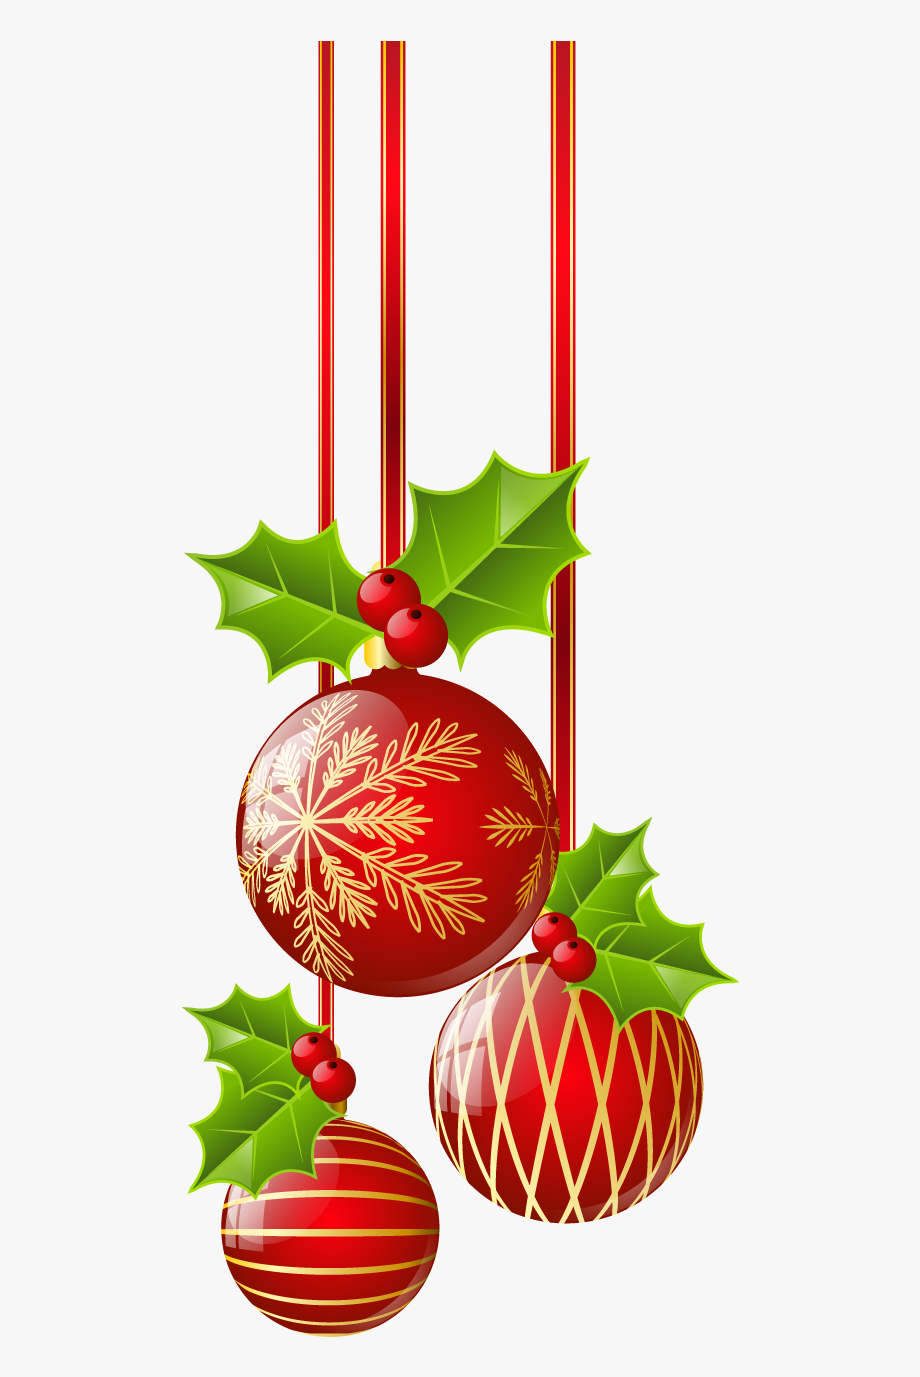 Find This Pin And More On Christmas Clip Art.